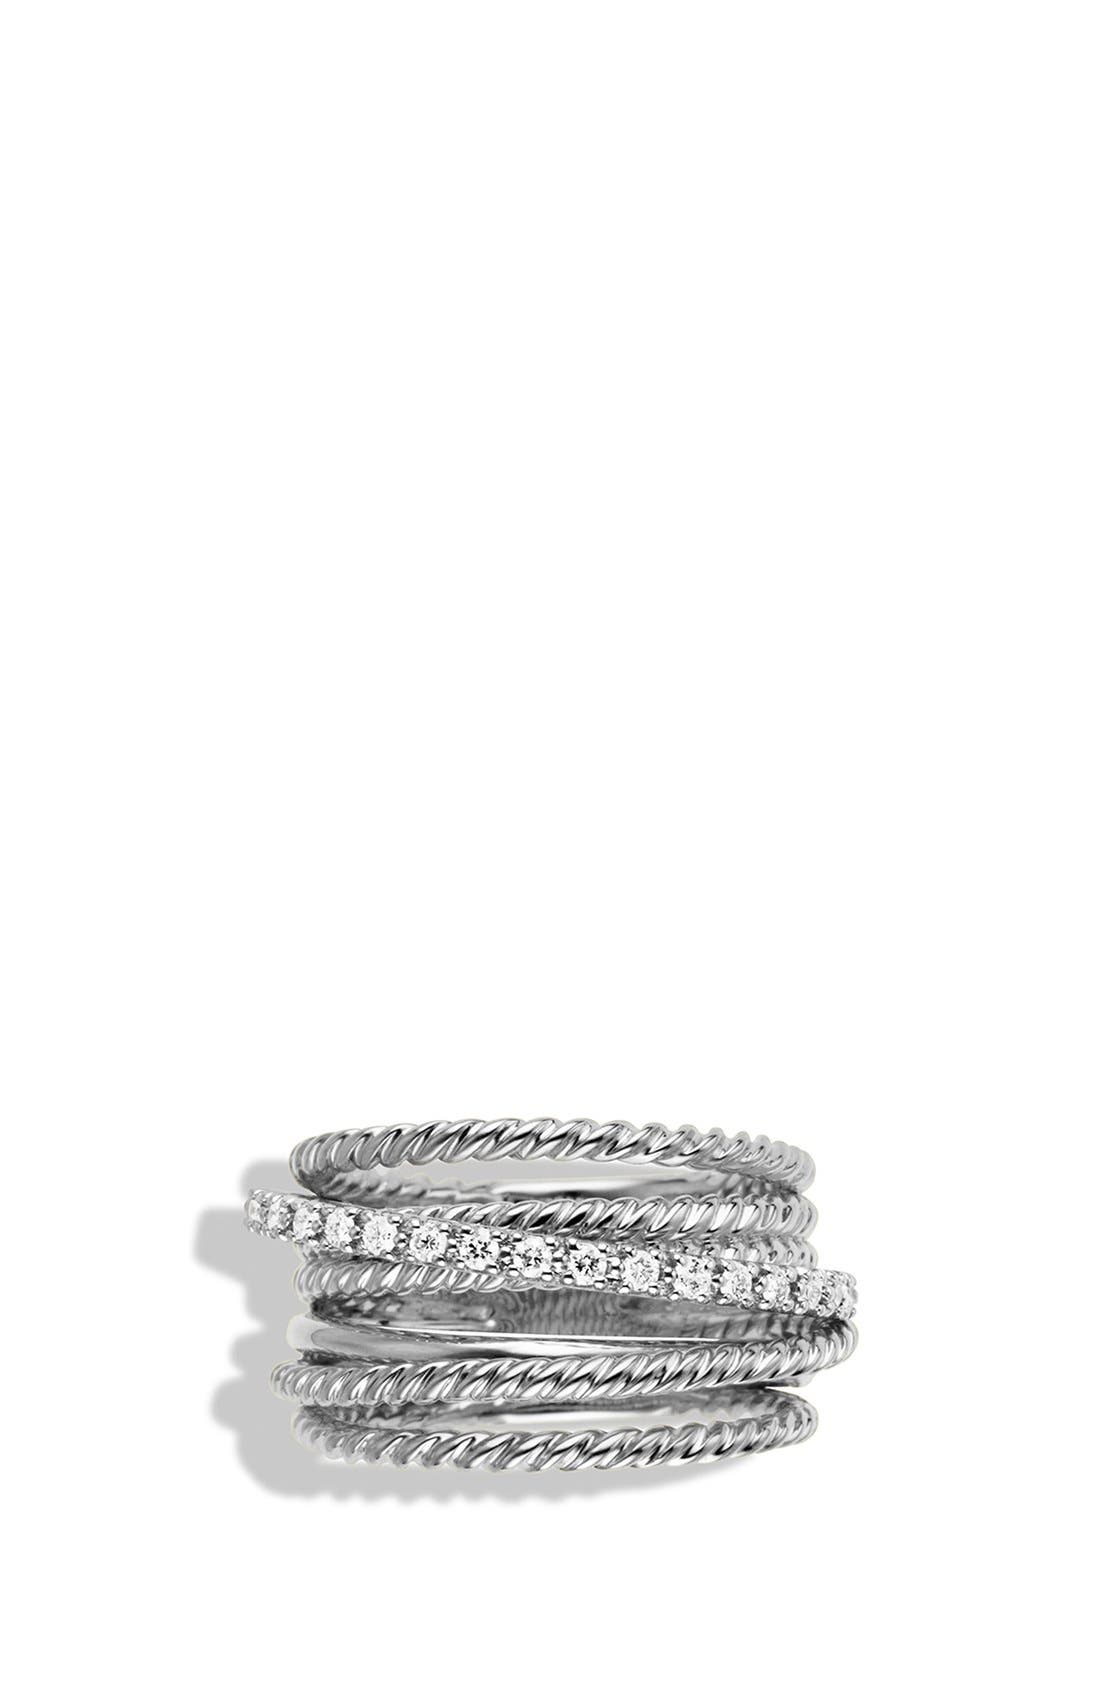 Alternate Image 3  - David Yurman 'Crossover' Wide Ring with Diamonds